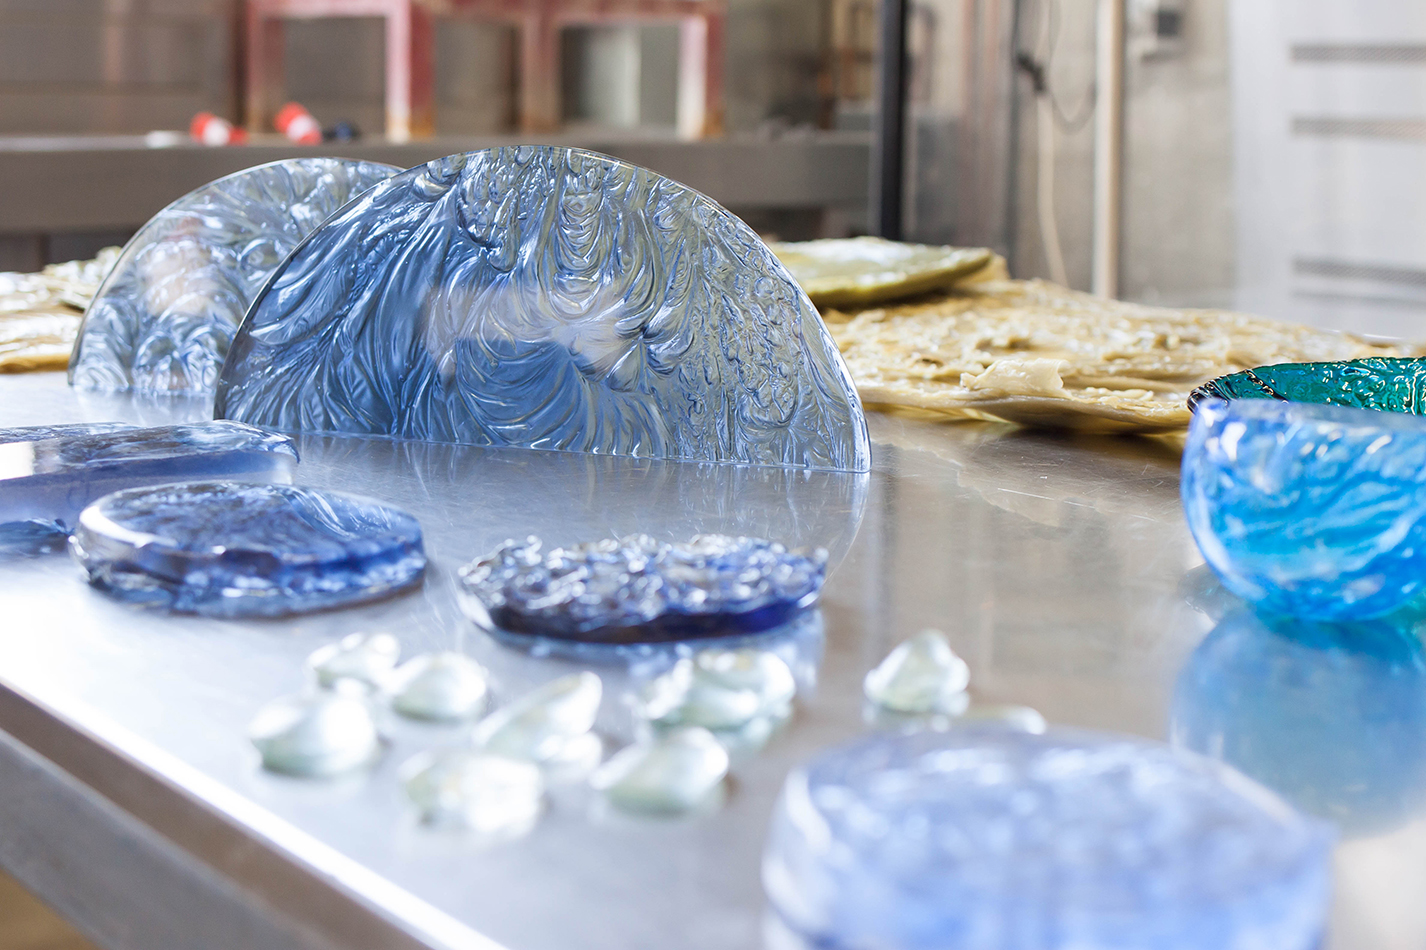 The Corner Store Galley -Studio visit and interview with glass artist Alexandra Frasersmith